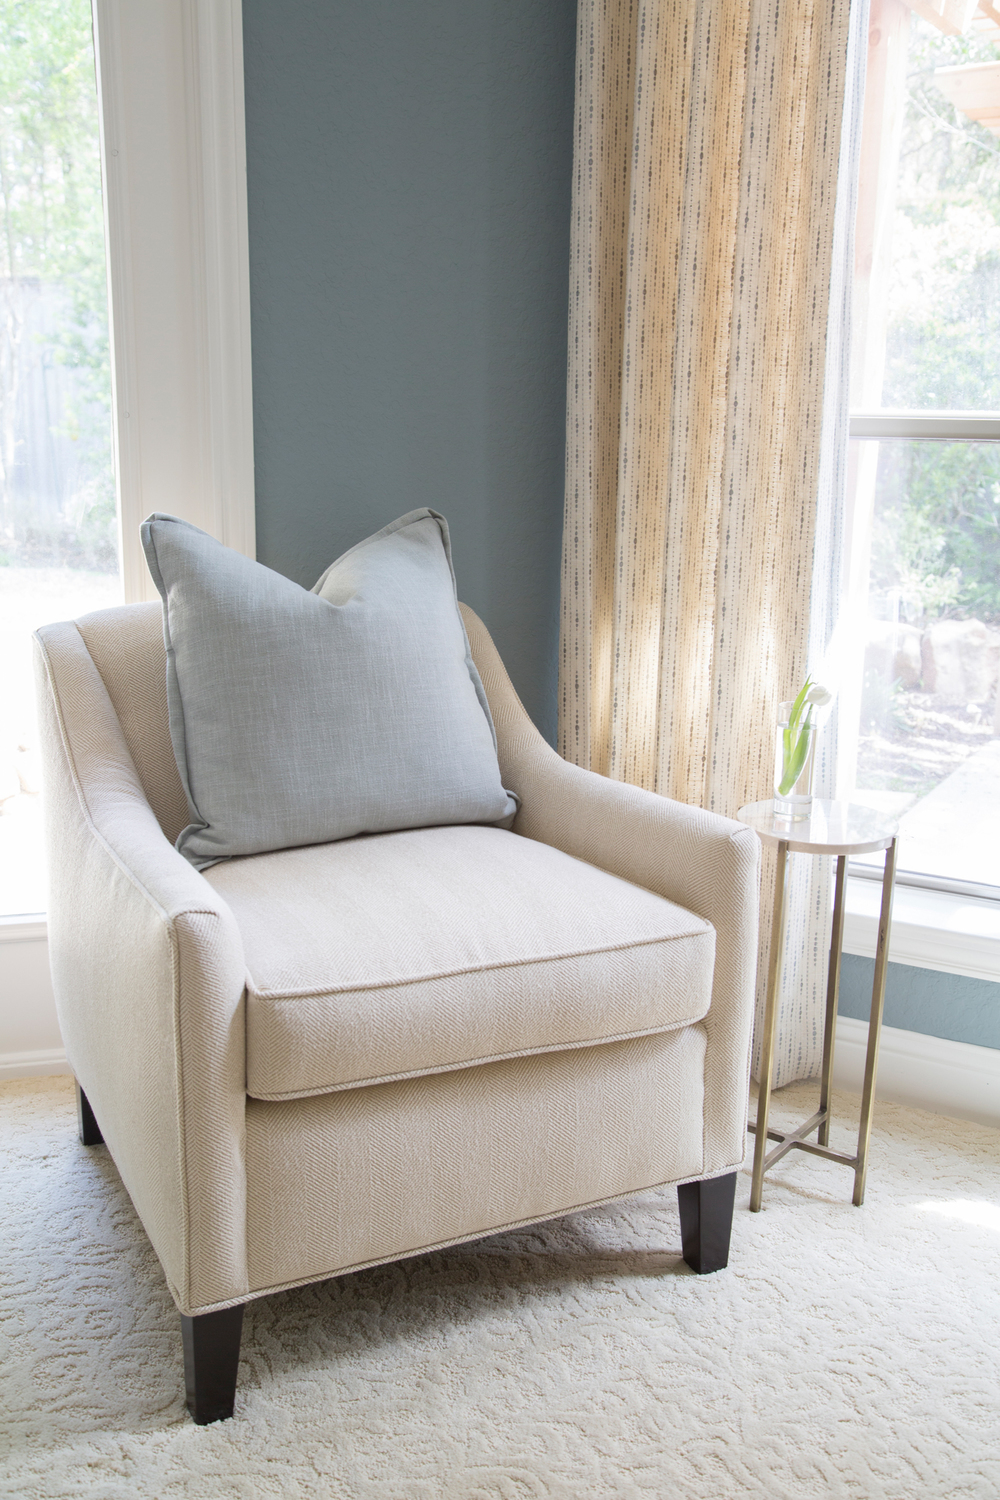 Bedroom chair, window, table | Interior Designer: Carla Aston / Photographer: Tori Aston